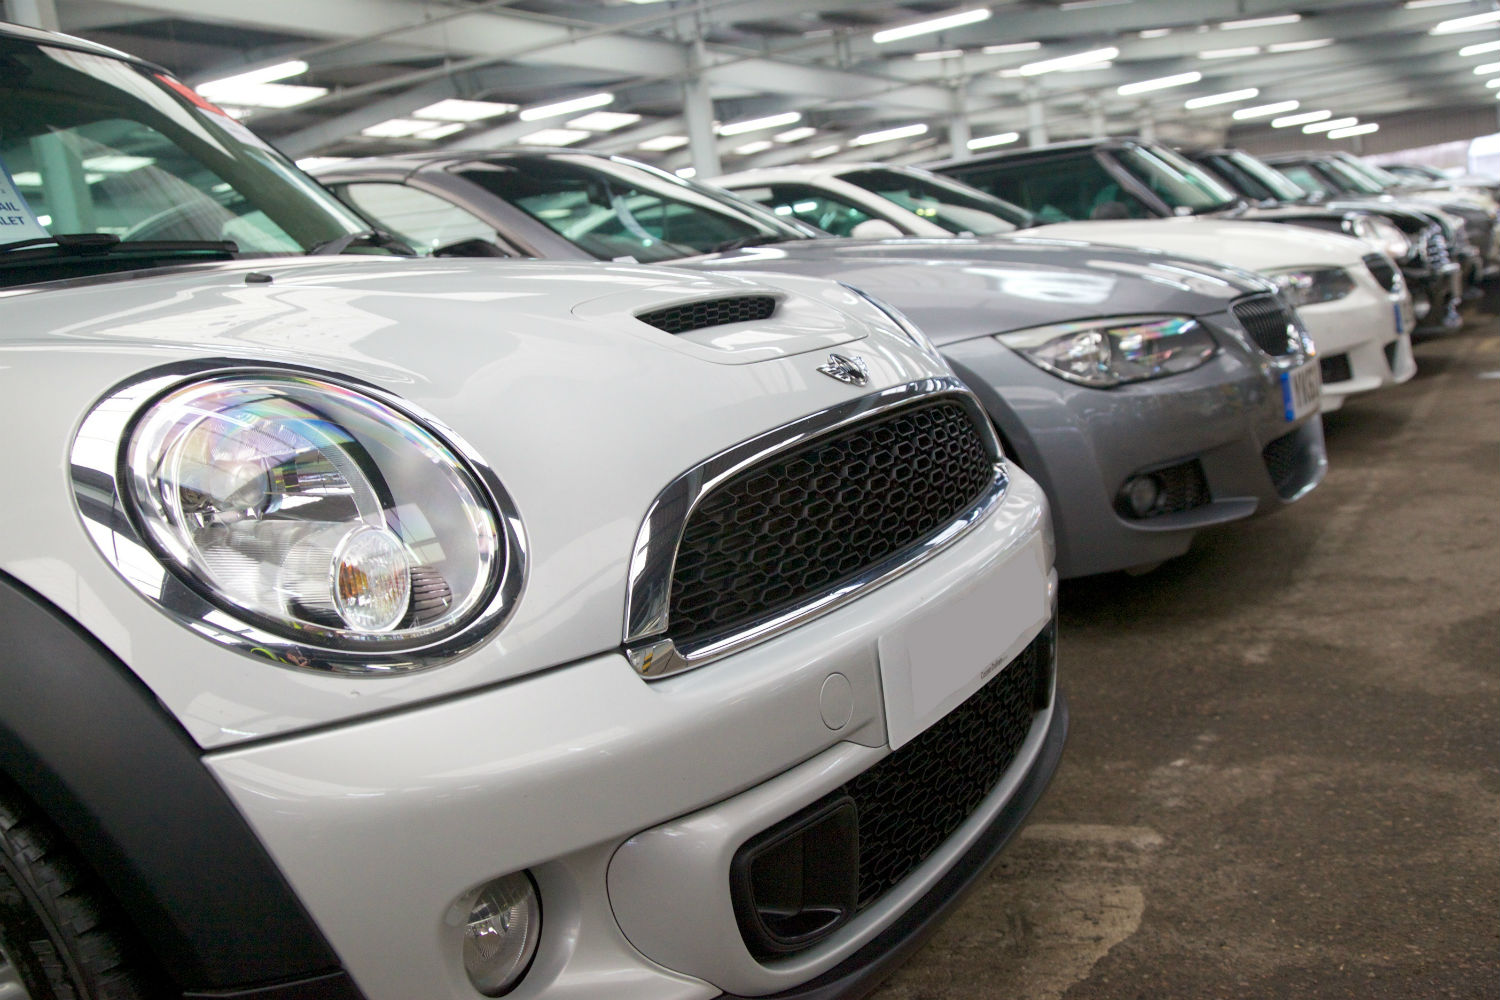 Vehicles prepared for sale at auction